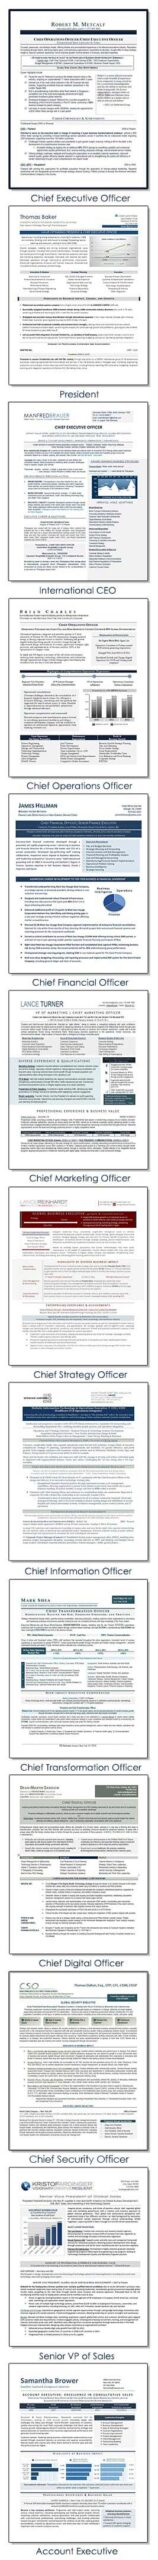 top executive resume writing services in and service new objective for finance cool Resume Executive Resume Writing Service